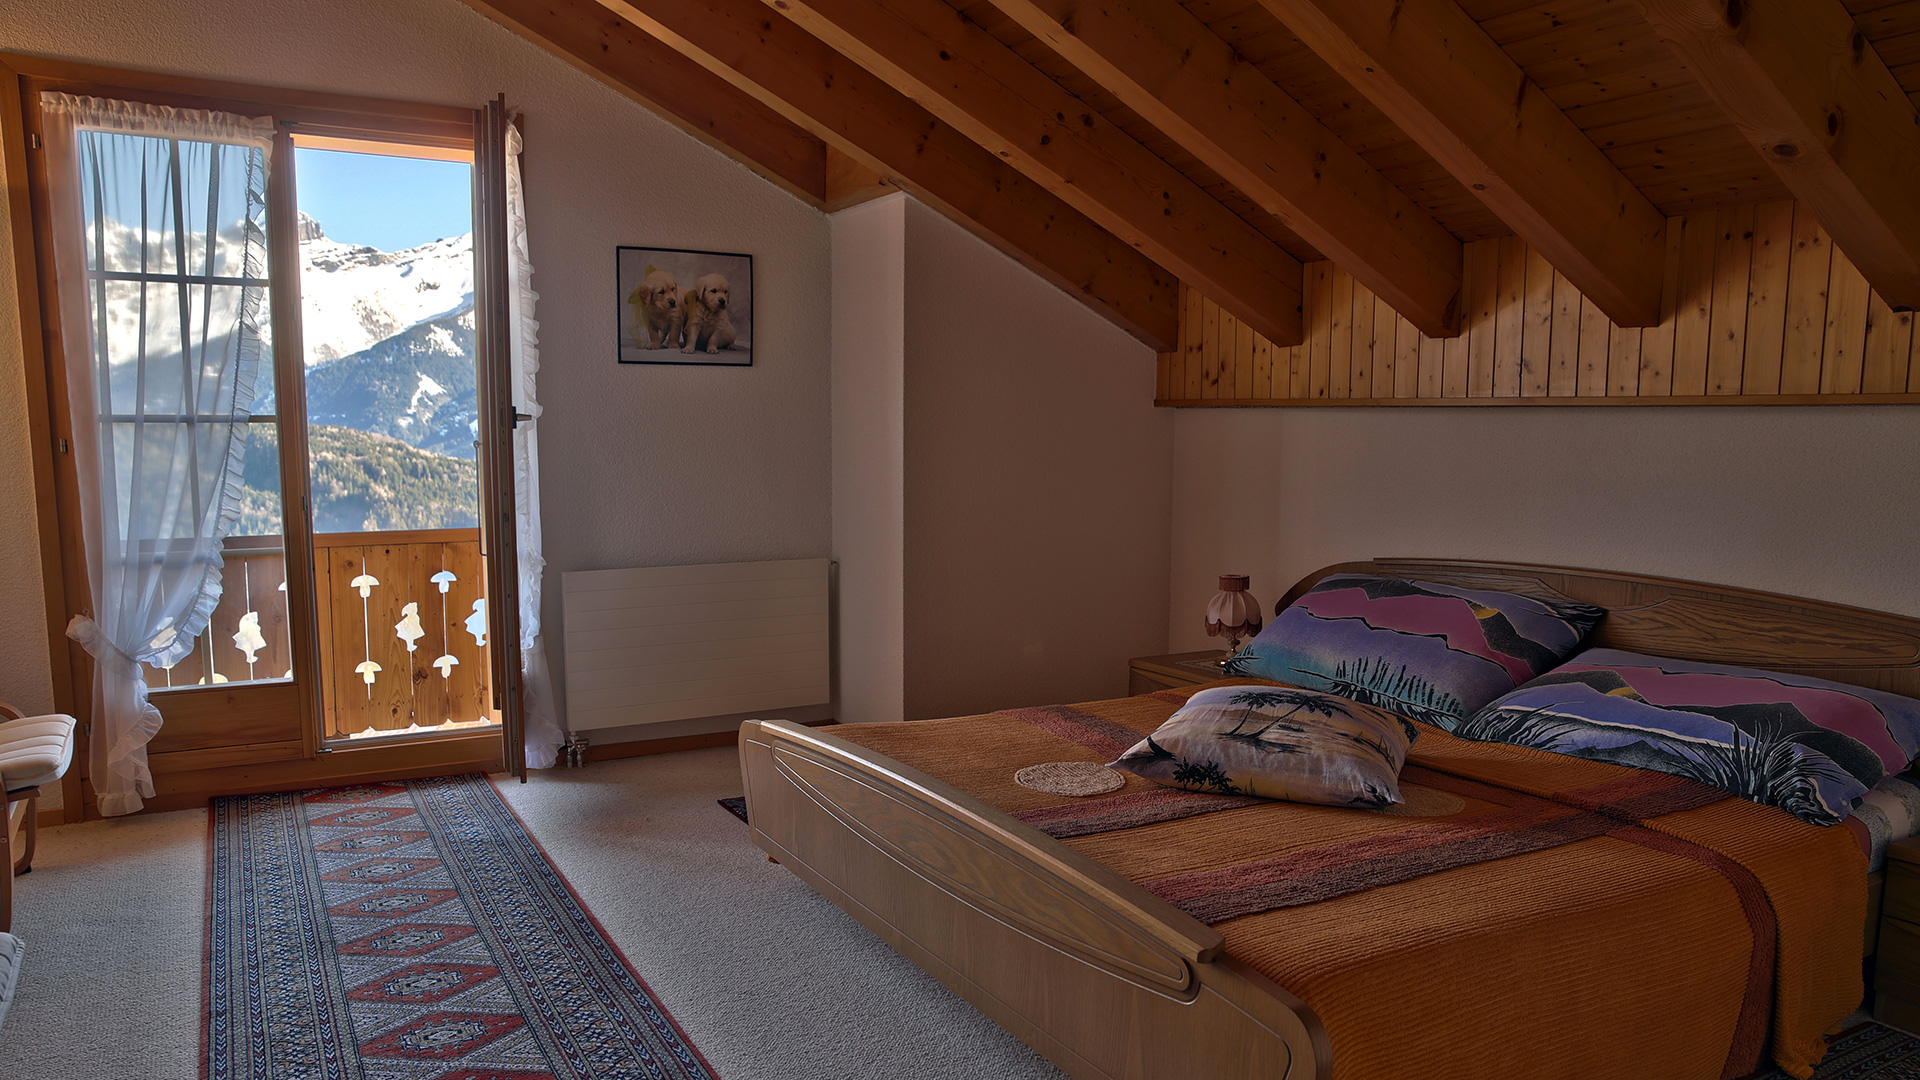 Chaperon Rouge B11 Apartments, Switzerland